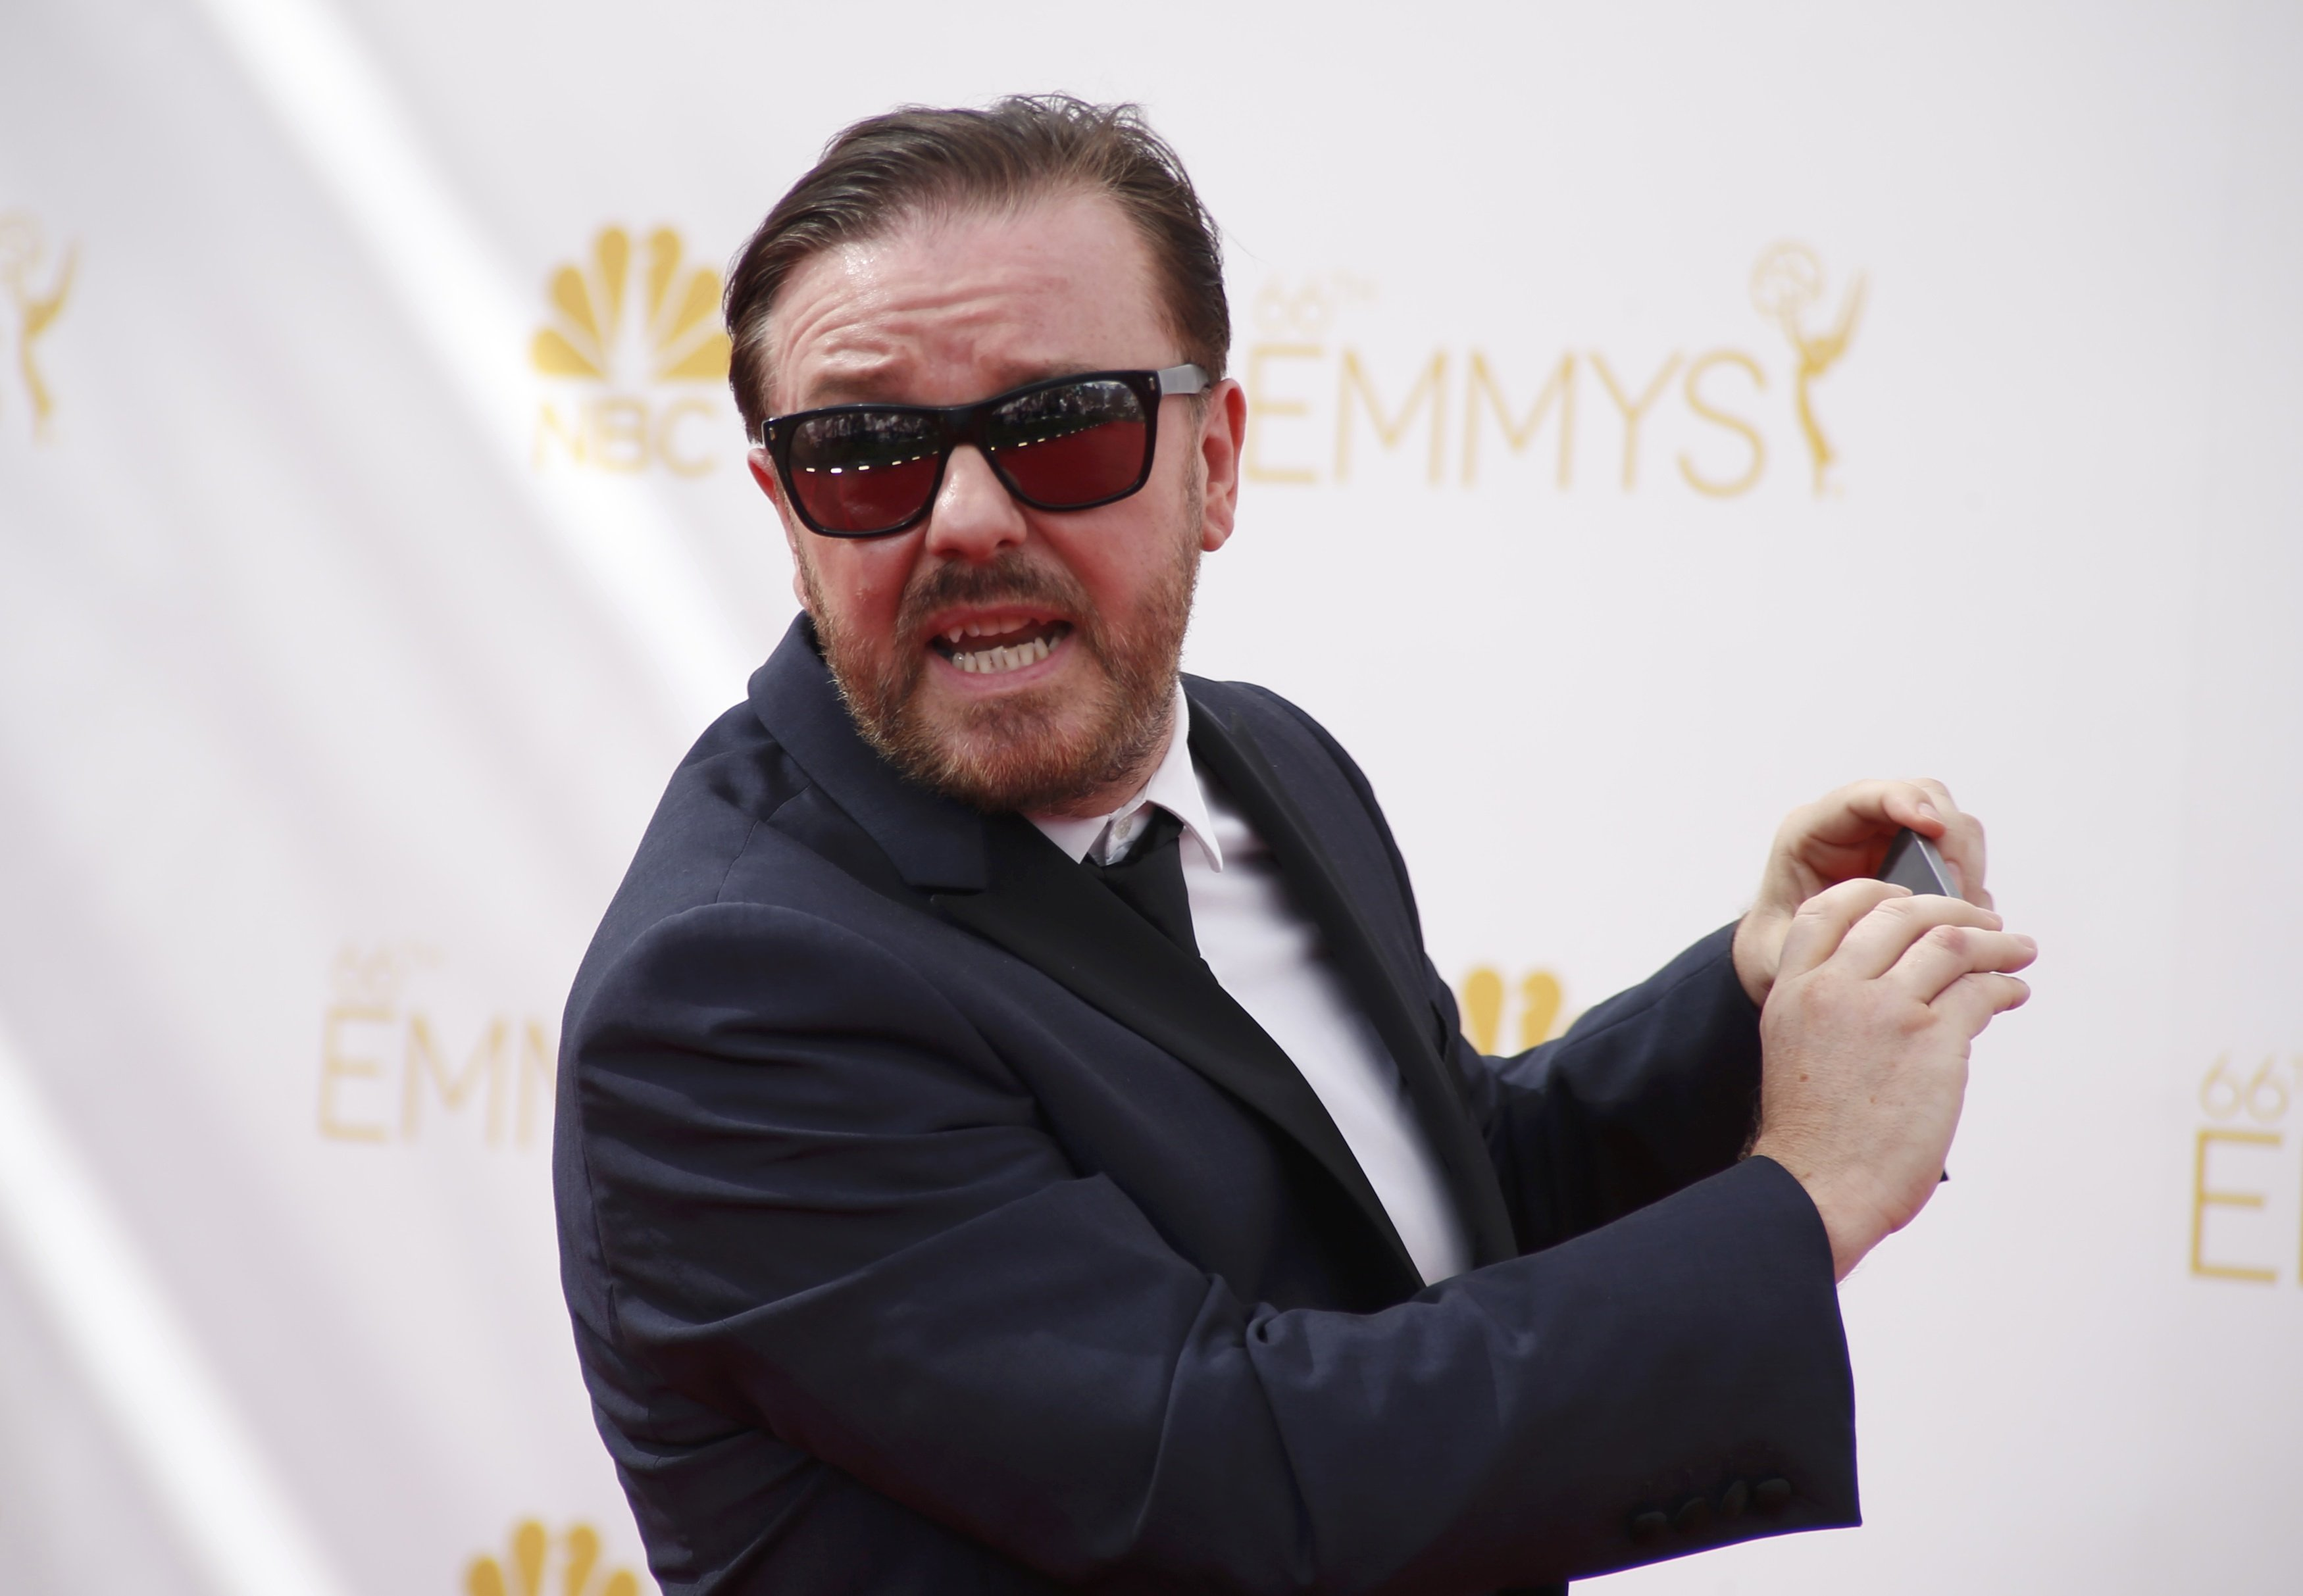 Actor Ricky Gervais arrives at the 66th Primetime Emmy Awards in Los Angeles, California August 25, 2014.